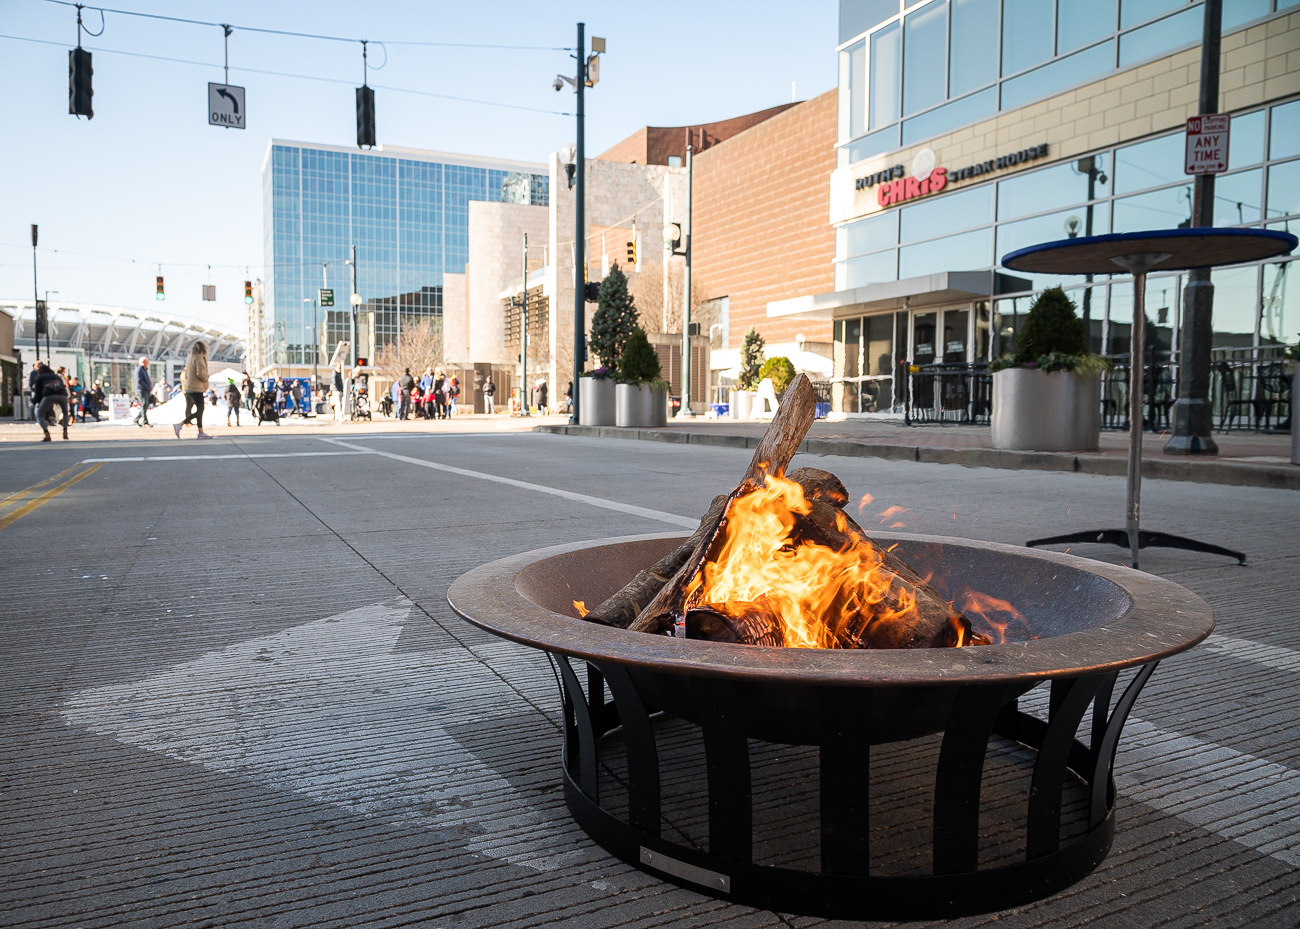 Fire pits give the street a pleasant bonfire smell. Frontgate's lounge area is a comfortable spot to post up and wait for the half-hourly blizzard the large fans along the sides of the street produce. / Image: Phil Armstrong, Cincinnati Refined // Published: 1.6.20